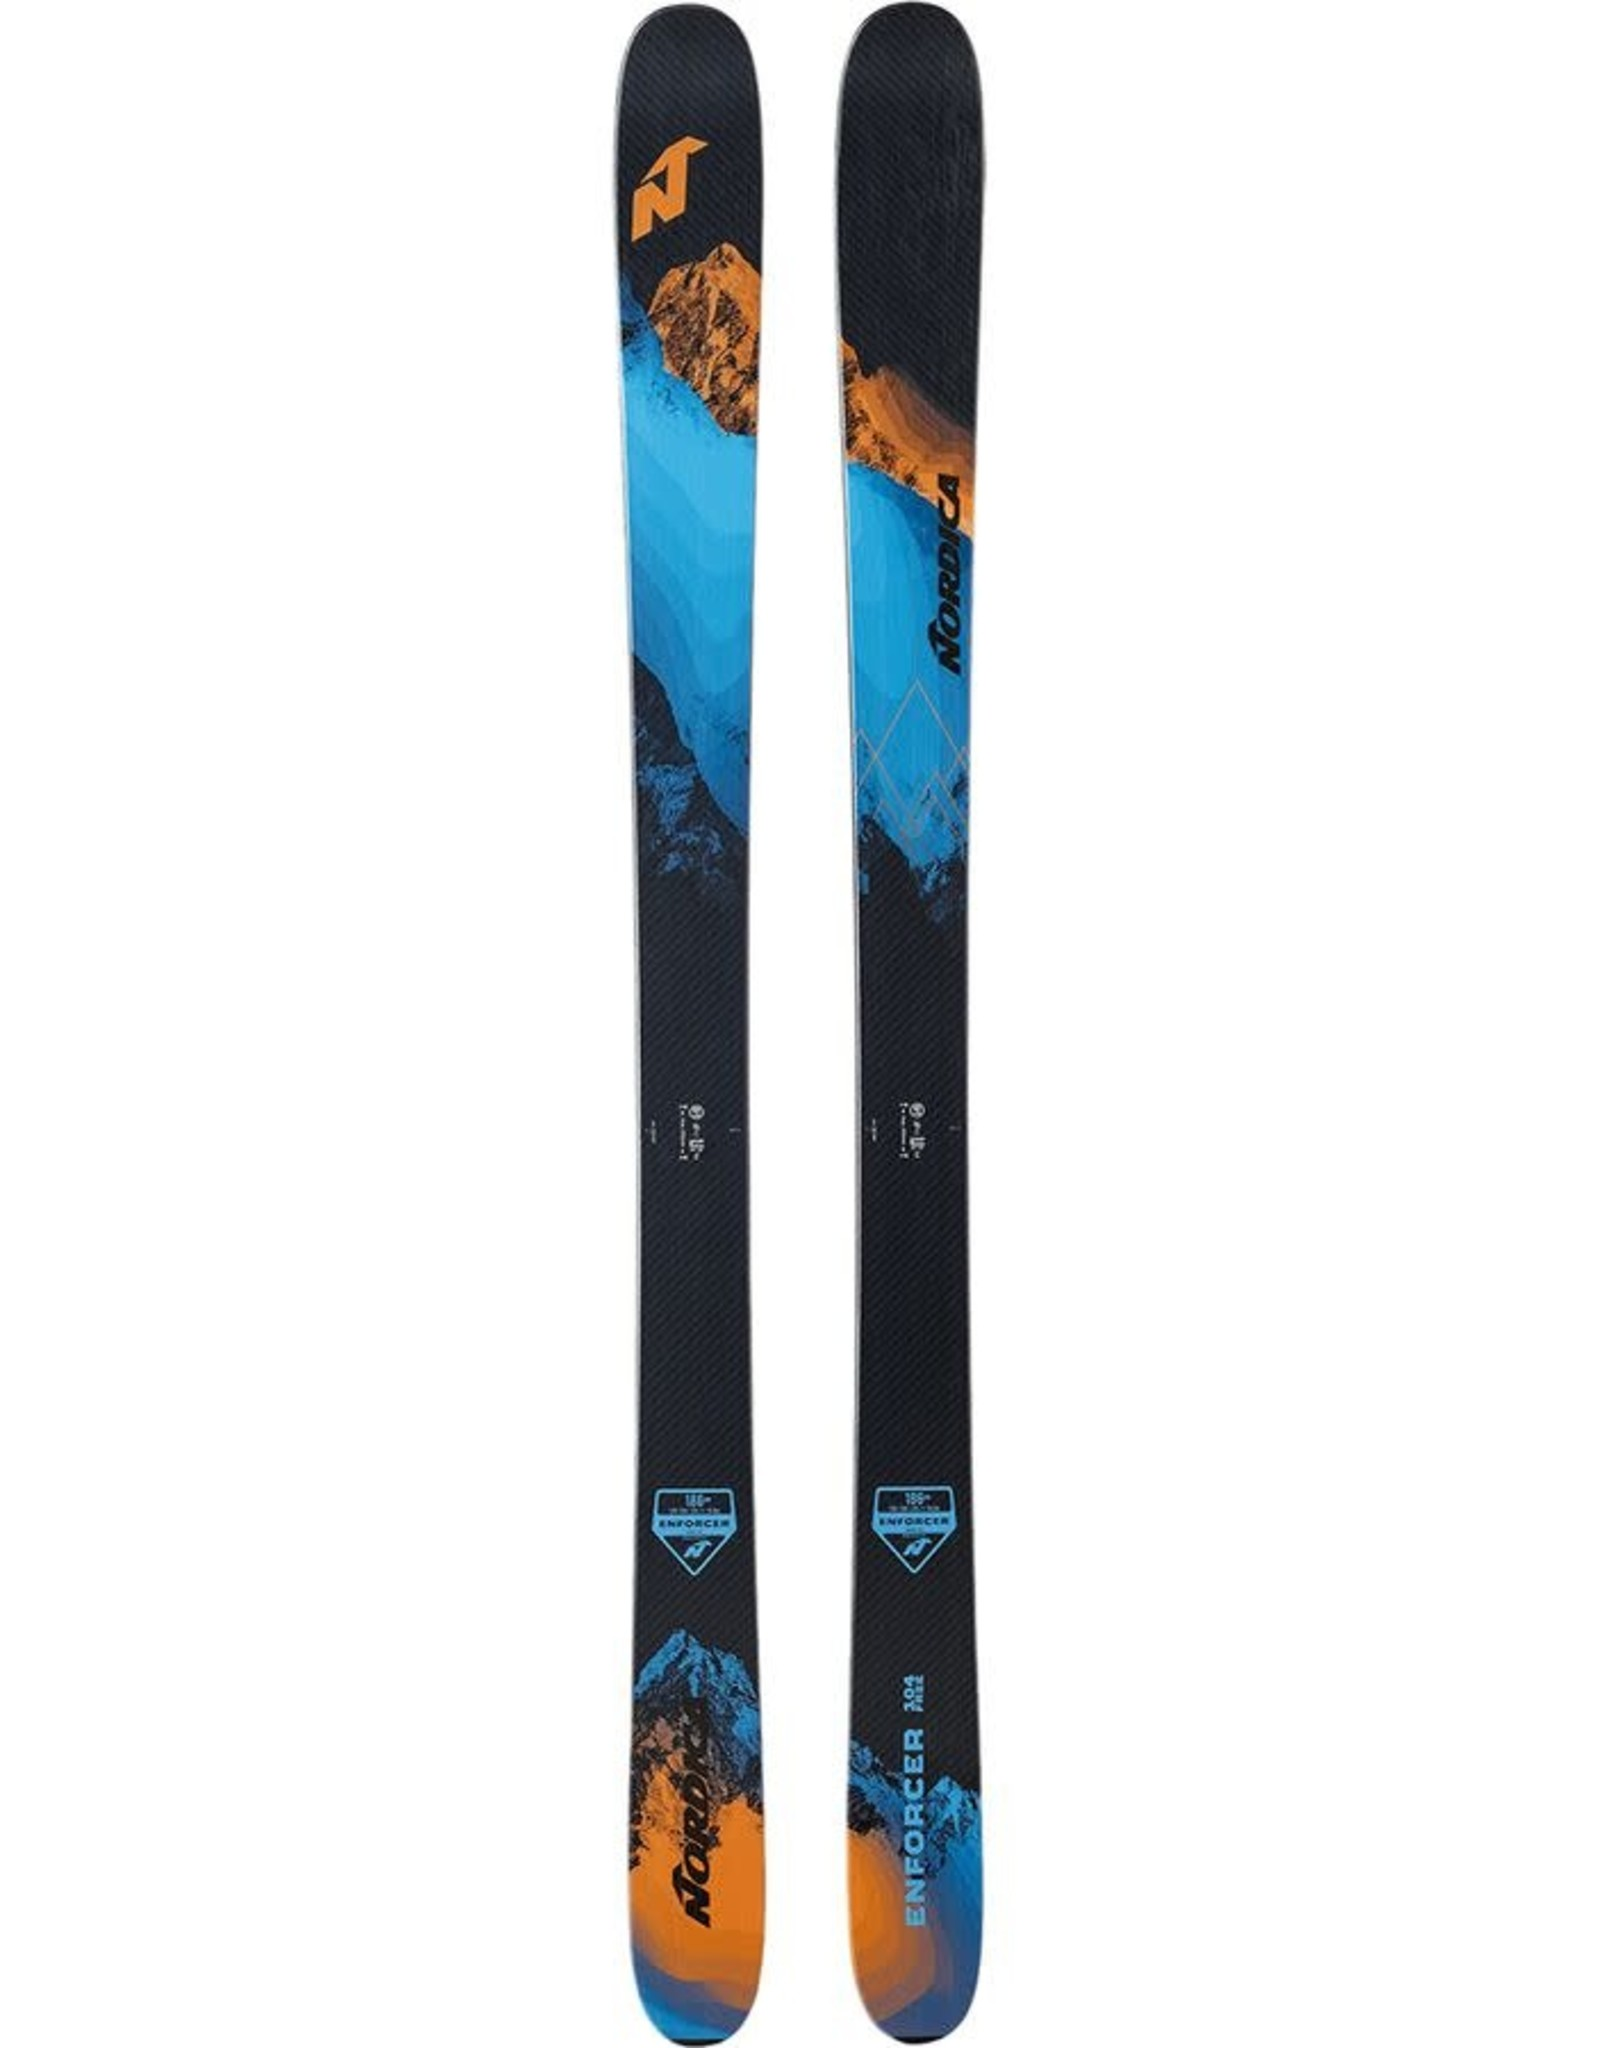 NORDICA NORDICA Skis ENFORCER 104 FREE (20/21)